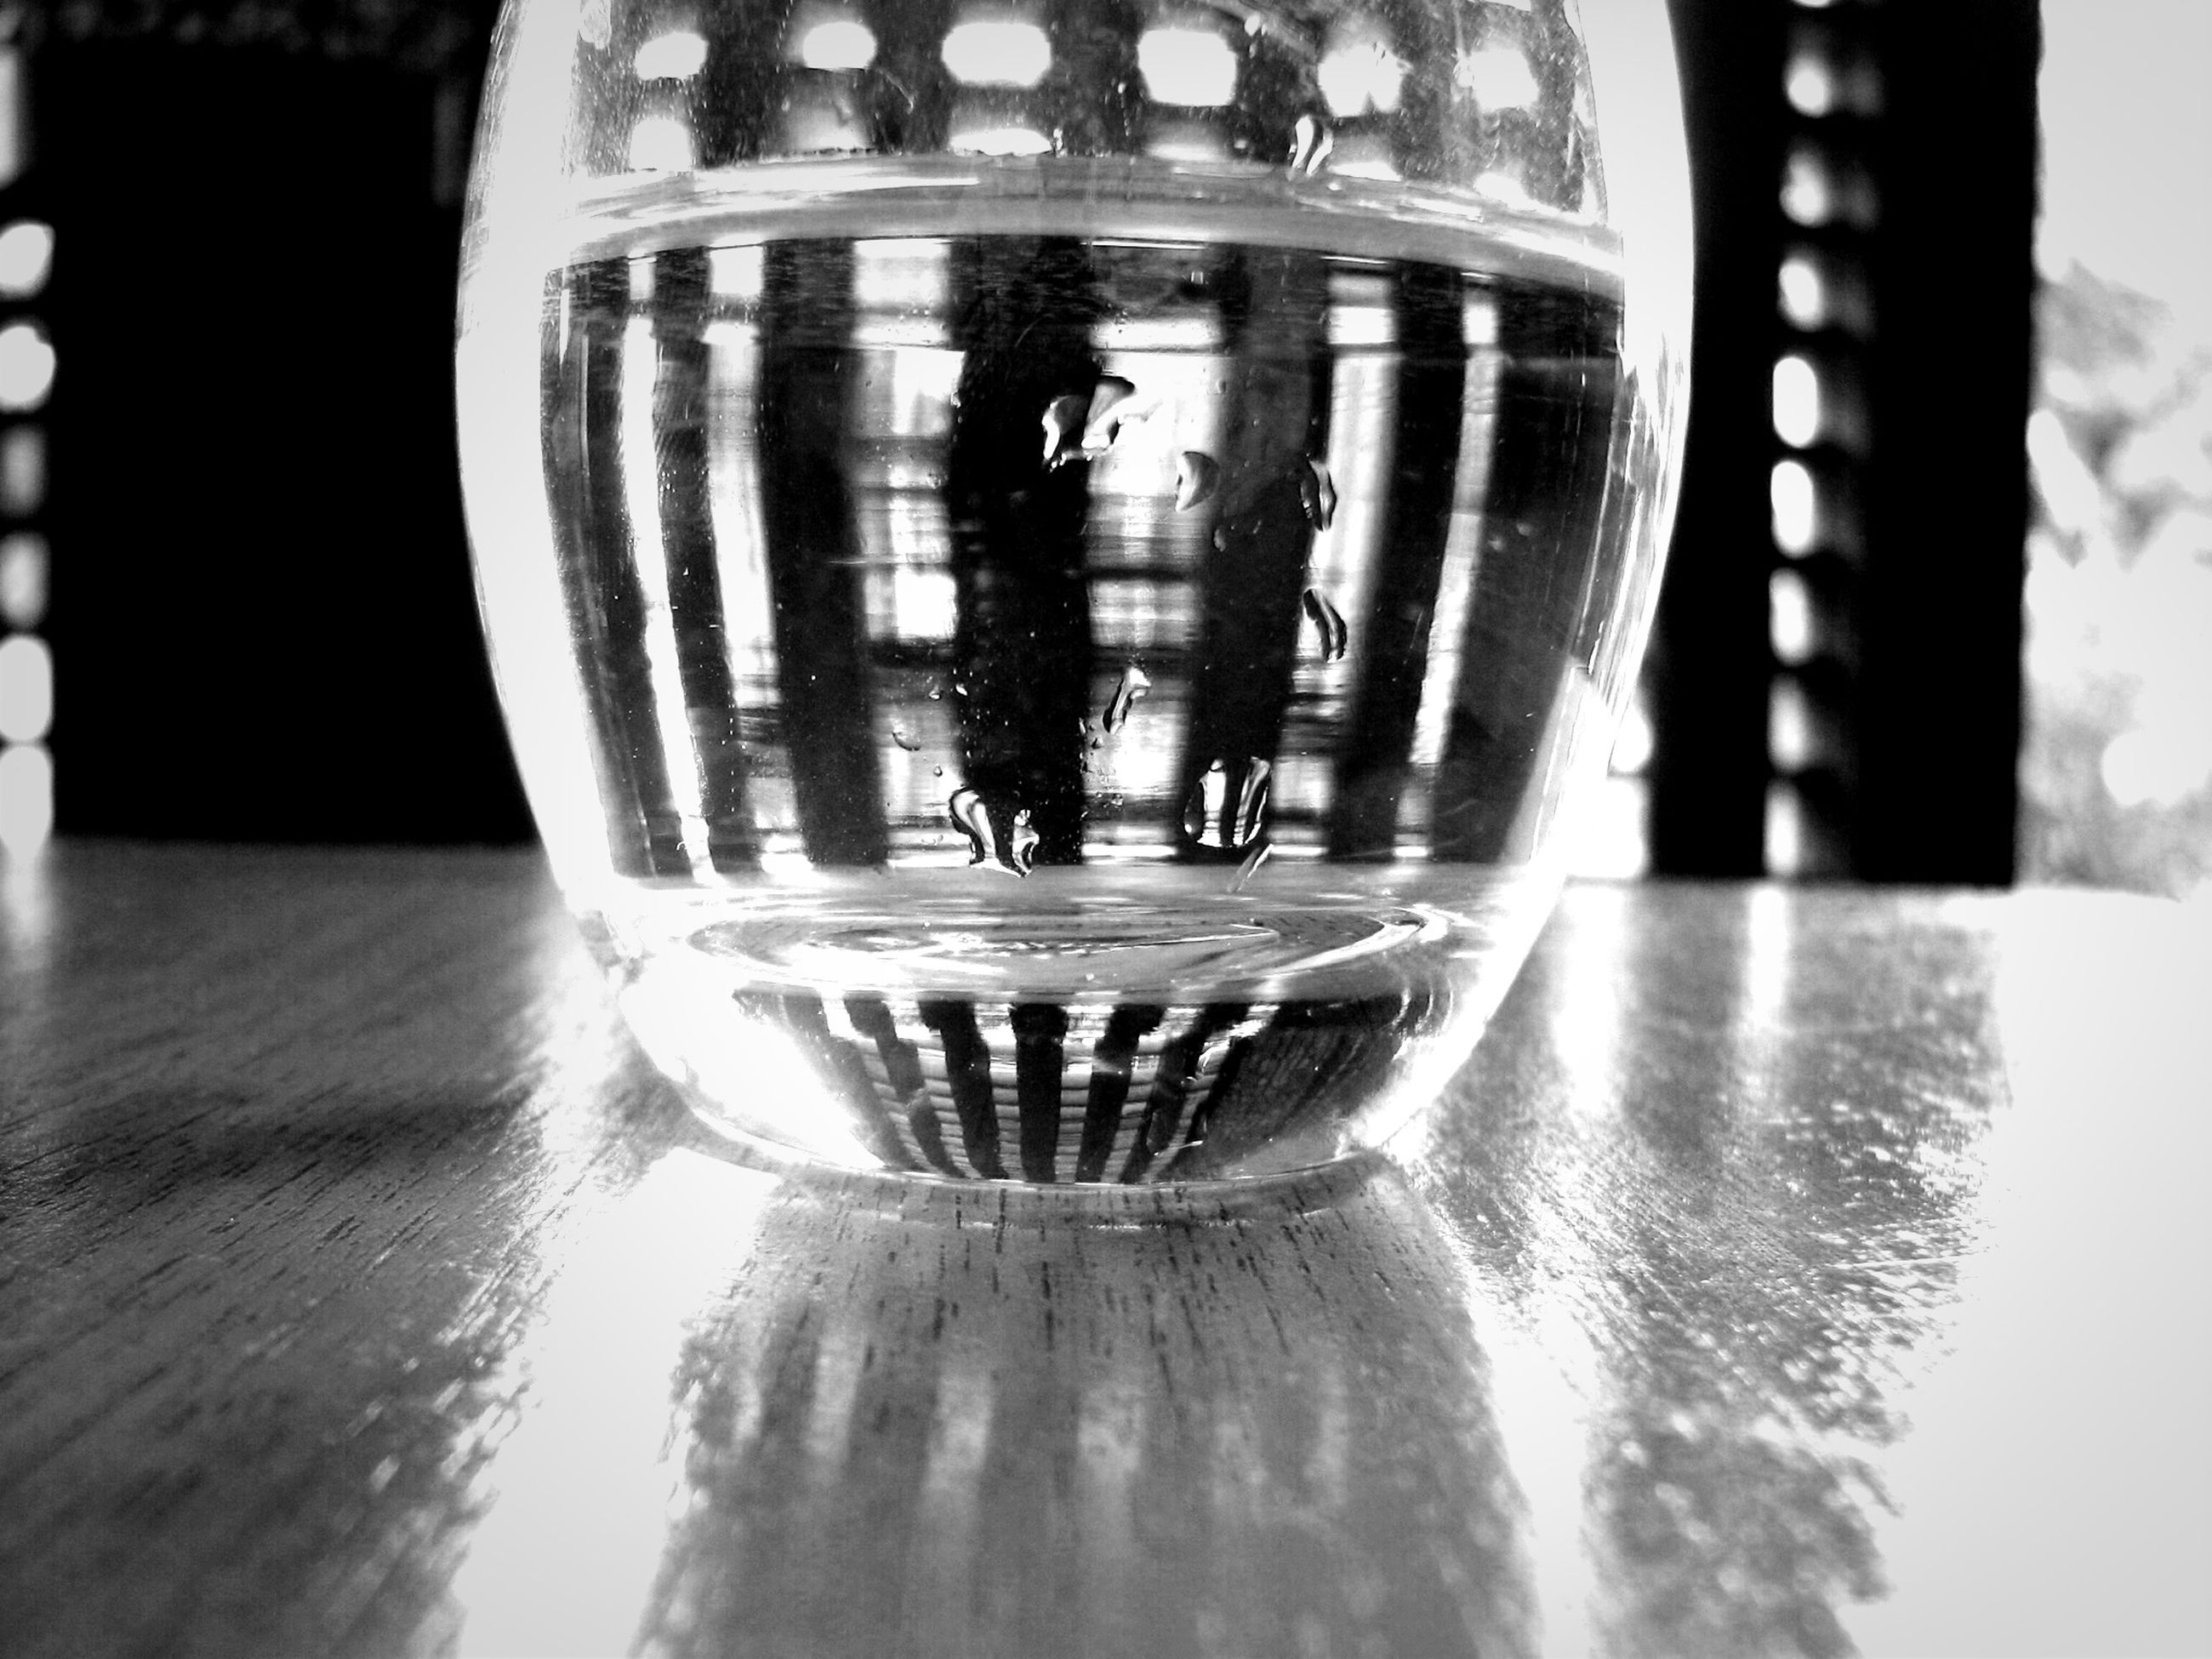 indoors, glass - material, drinking glass, reflection, close-up, transparent, refreshment, focus on foreground, lighting equipment, water, illuminated, drink, wineglass, motion, splashing, table, alcohol, glass, no people, selective focus